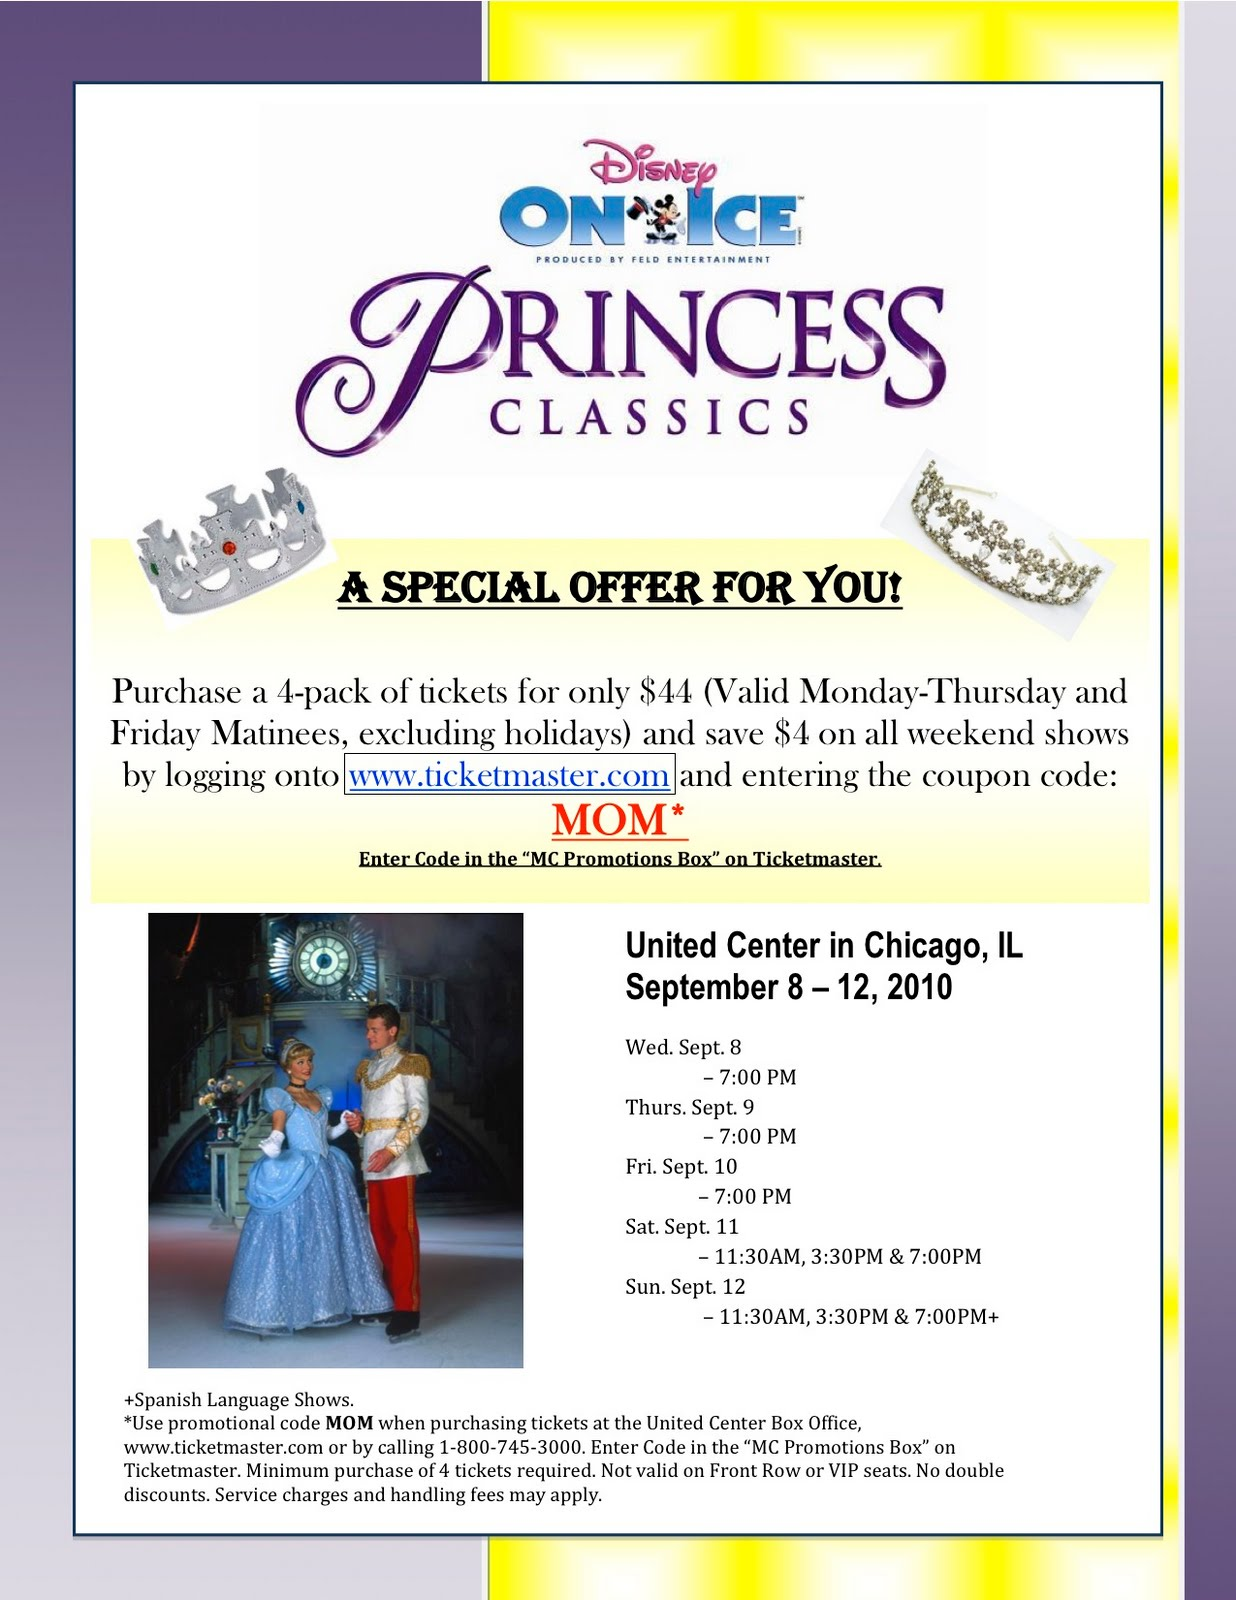 Rodgers and Hammerstein's Cinderella Popular Events